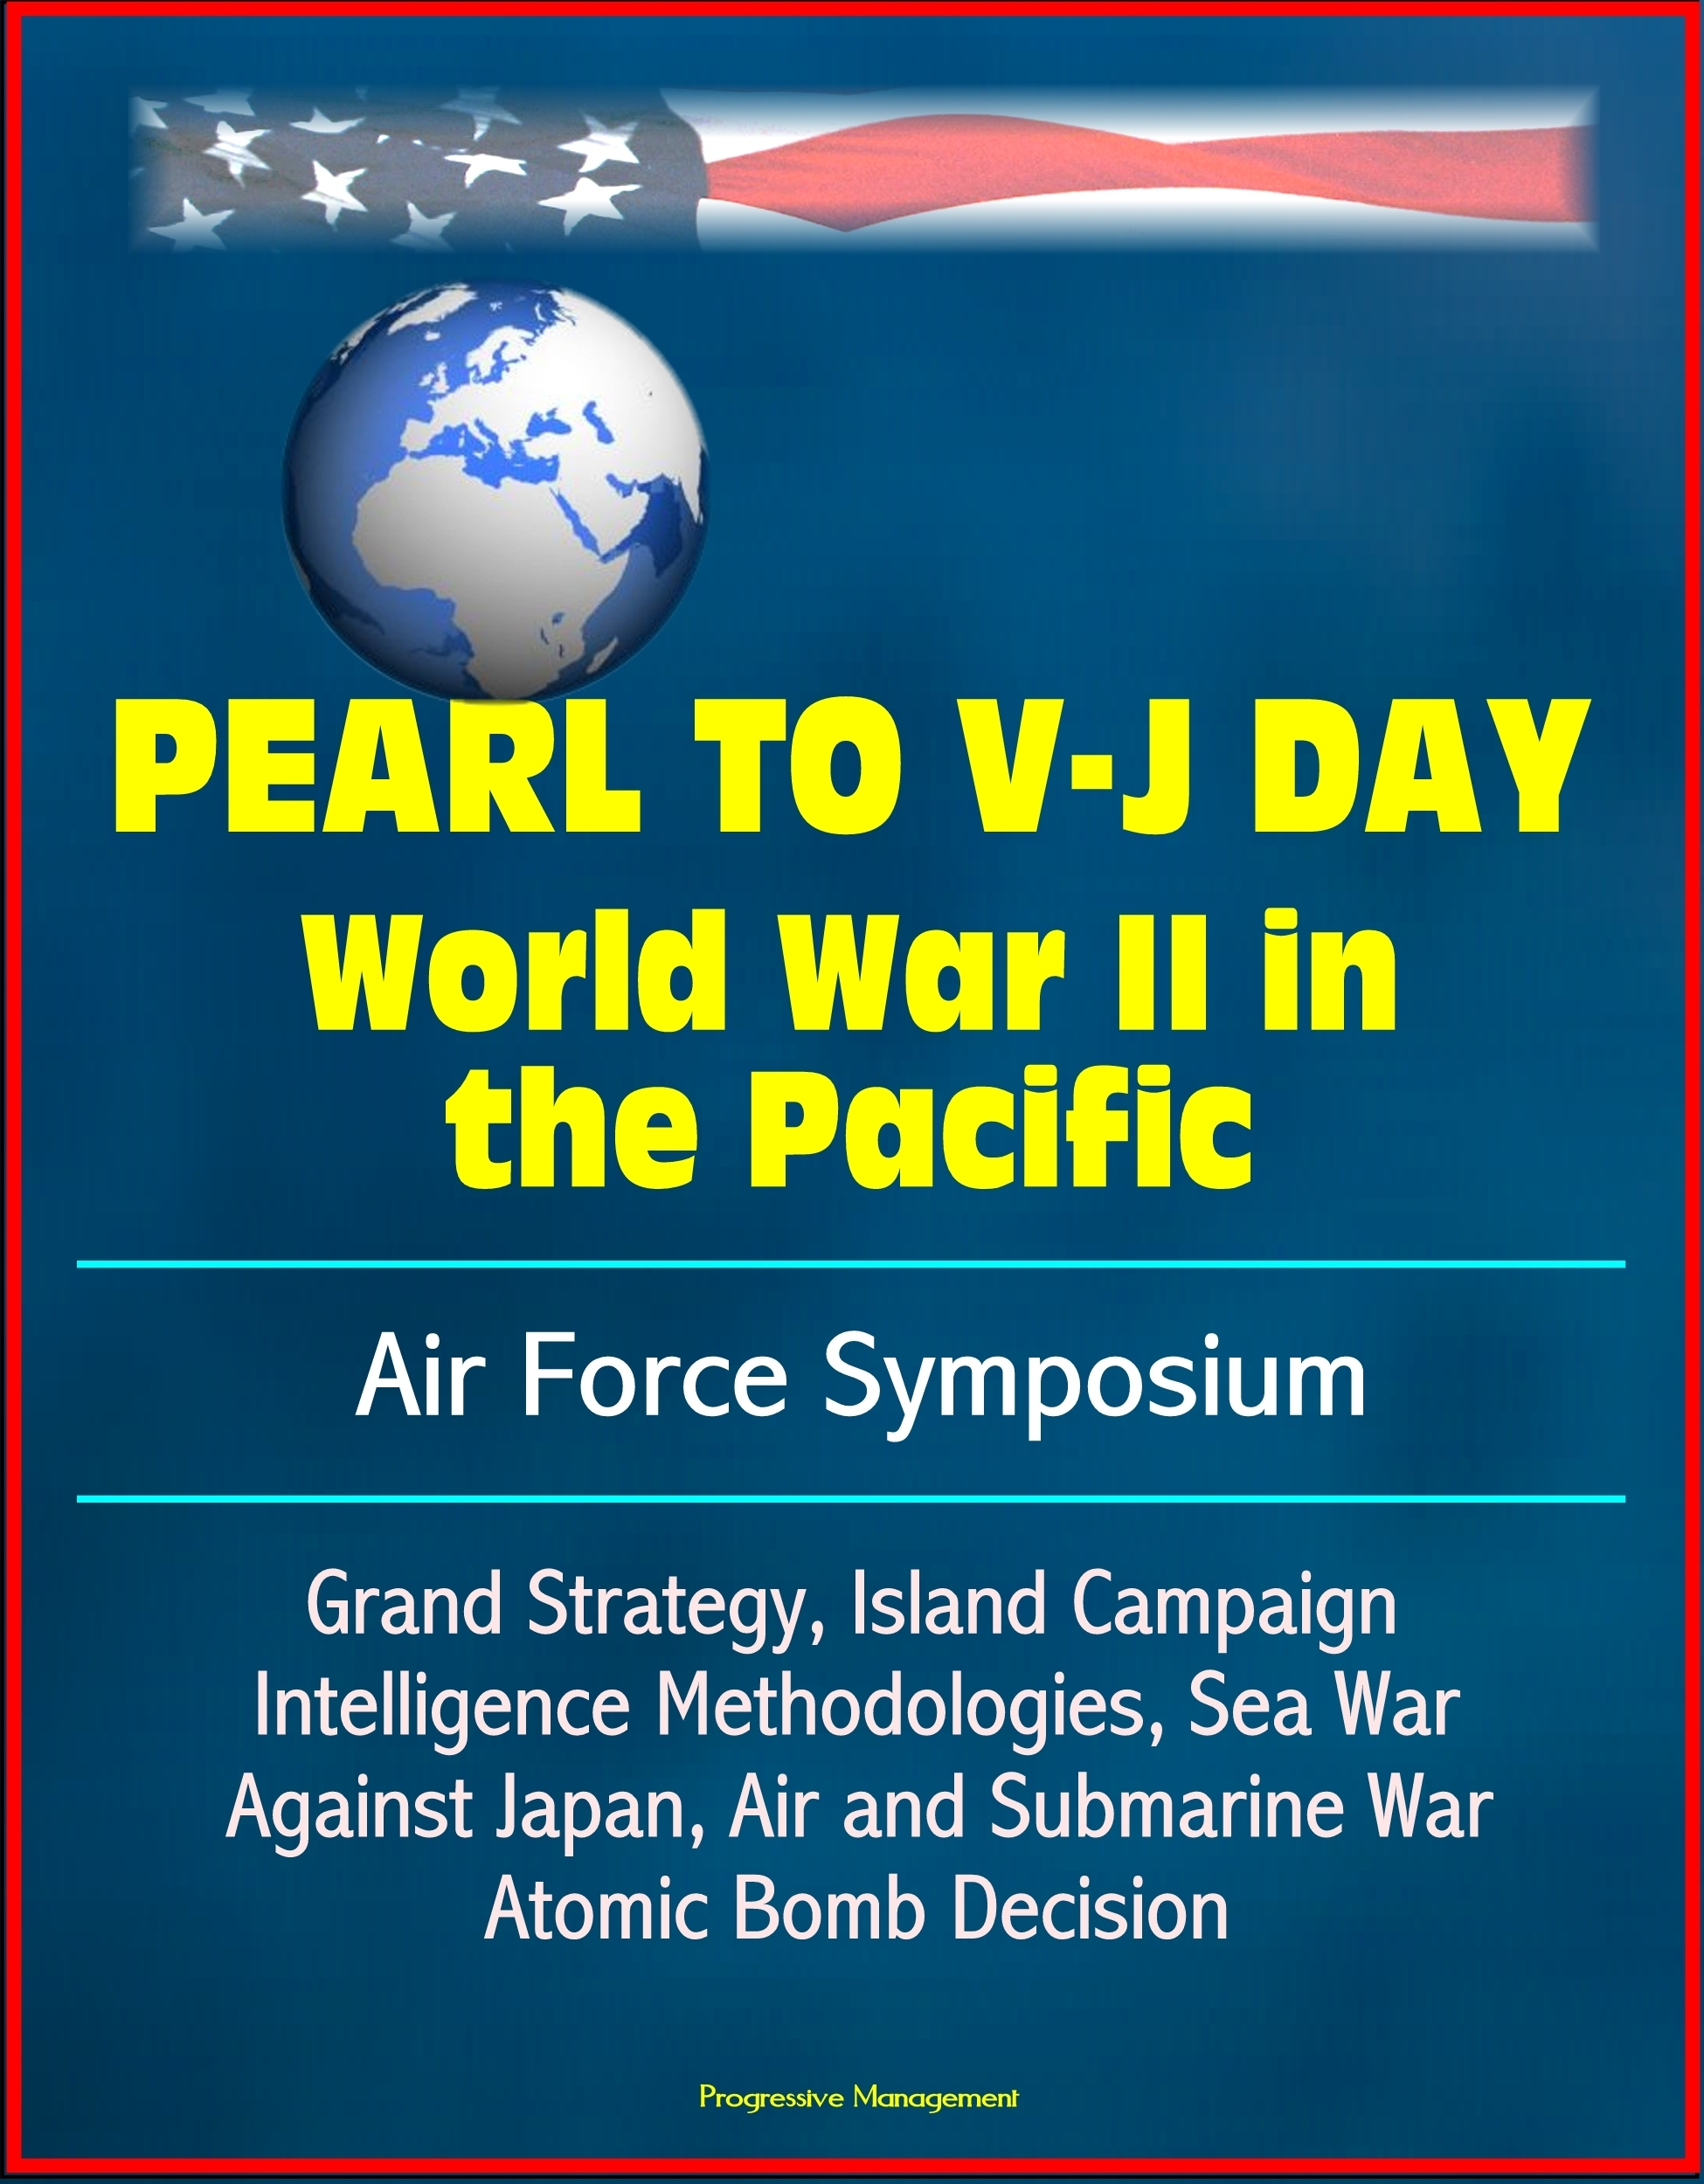 Pearl to V-J Day: World War II in the Pacific - Air Force Symposium, Grand Strategy, Island Campaign, Intelligence Methodologies, Sea War Against Japan, Air and Submarine War, Atomic Bomb Decision  by  Progressive Management